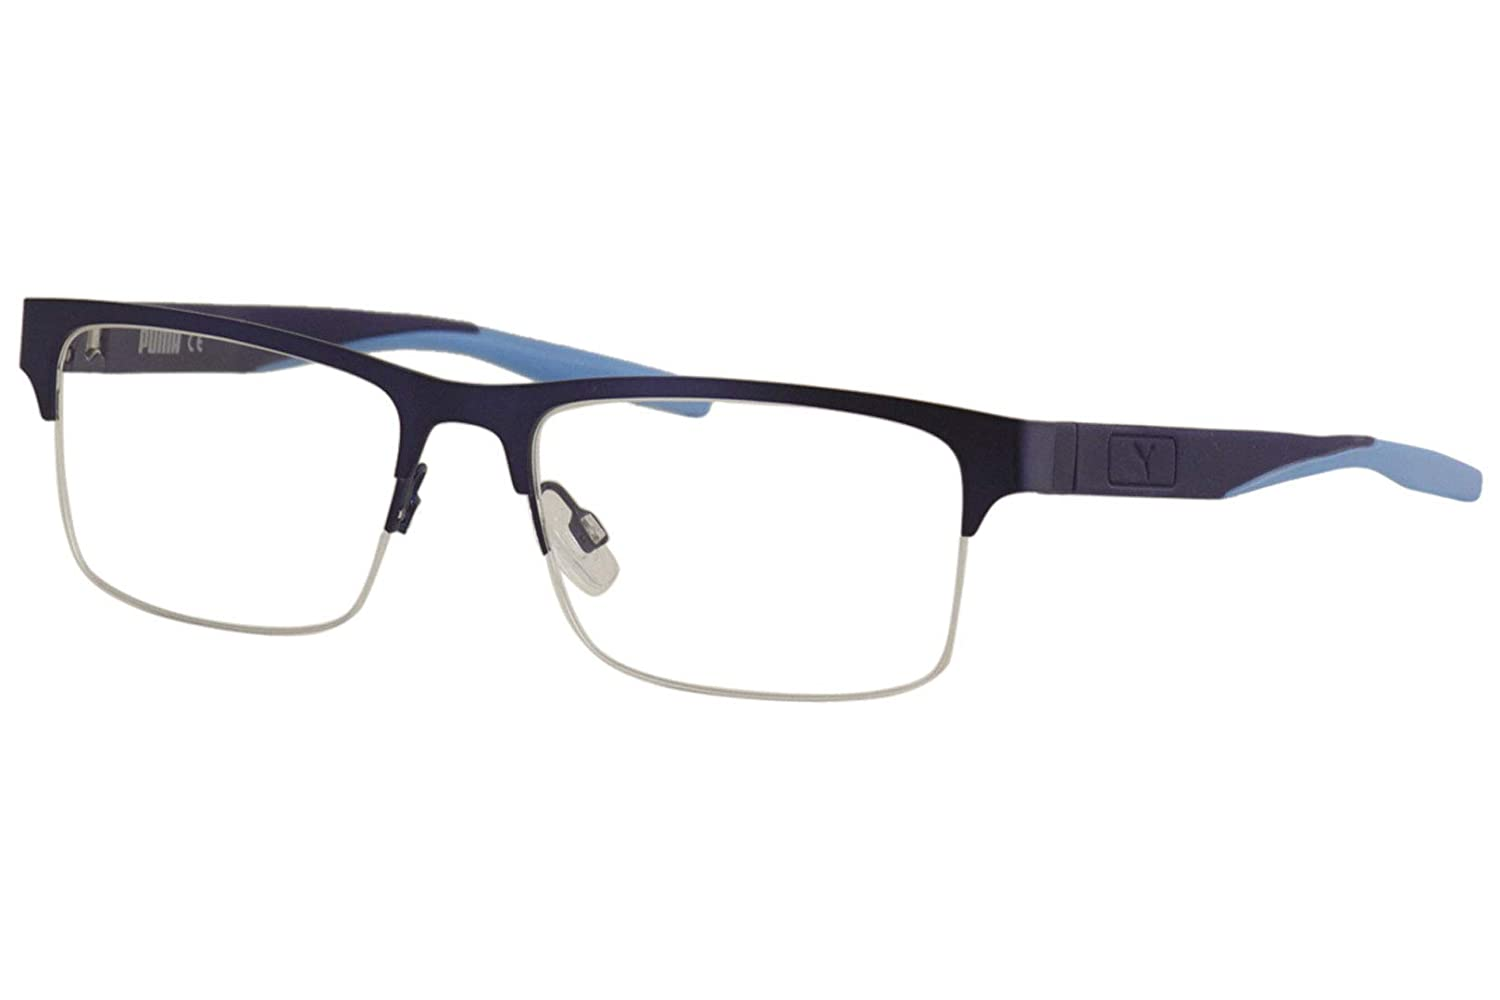 Puma PU 0233 O- 002 - Gafas de sol, color azul: Amazon.es ...